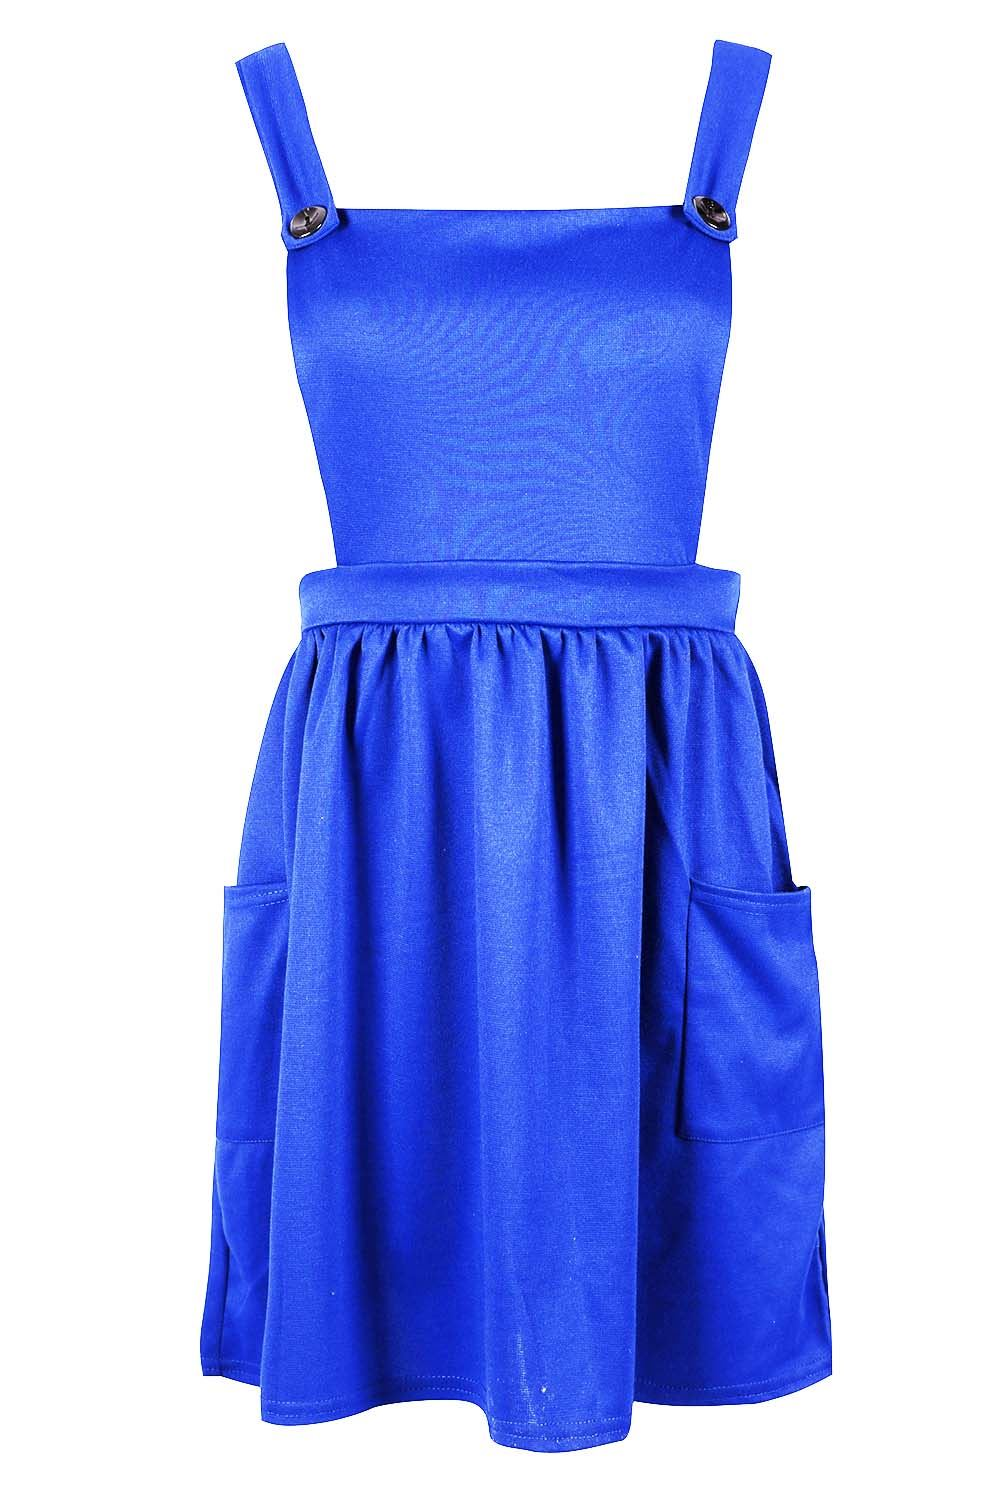 Womens-Ladies-Dungarees-Pinafore-Cross-Back-Strappy-Skater-Flared-Dress-Playsuit thumbnail 7